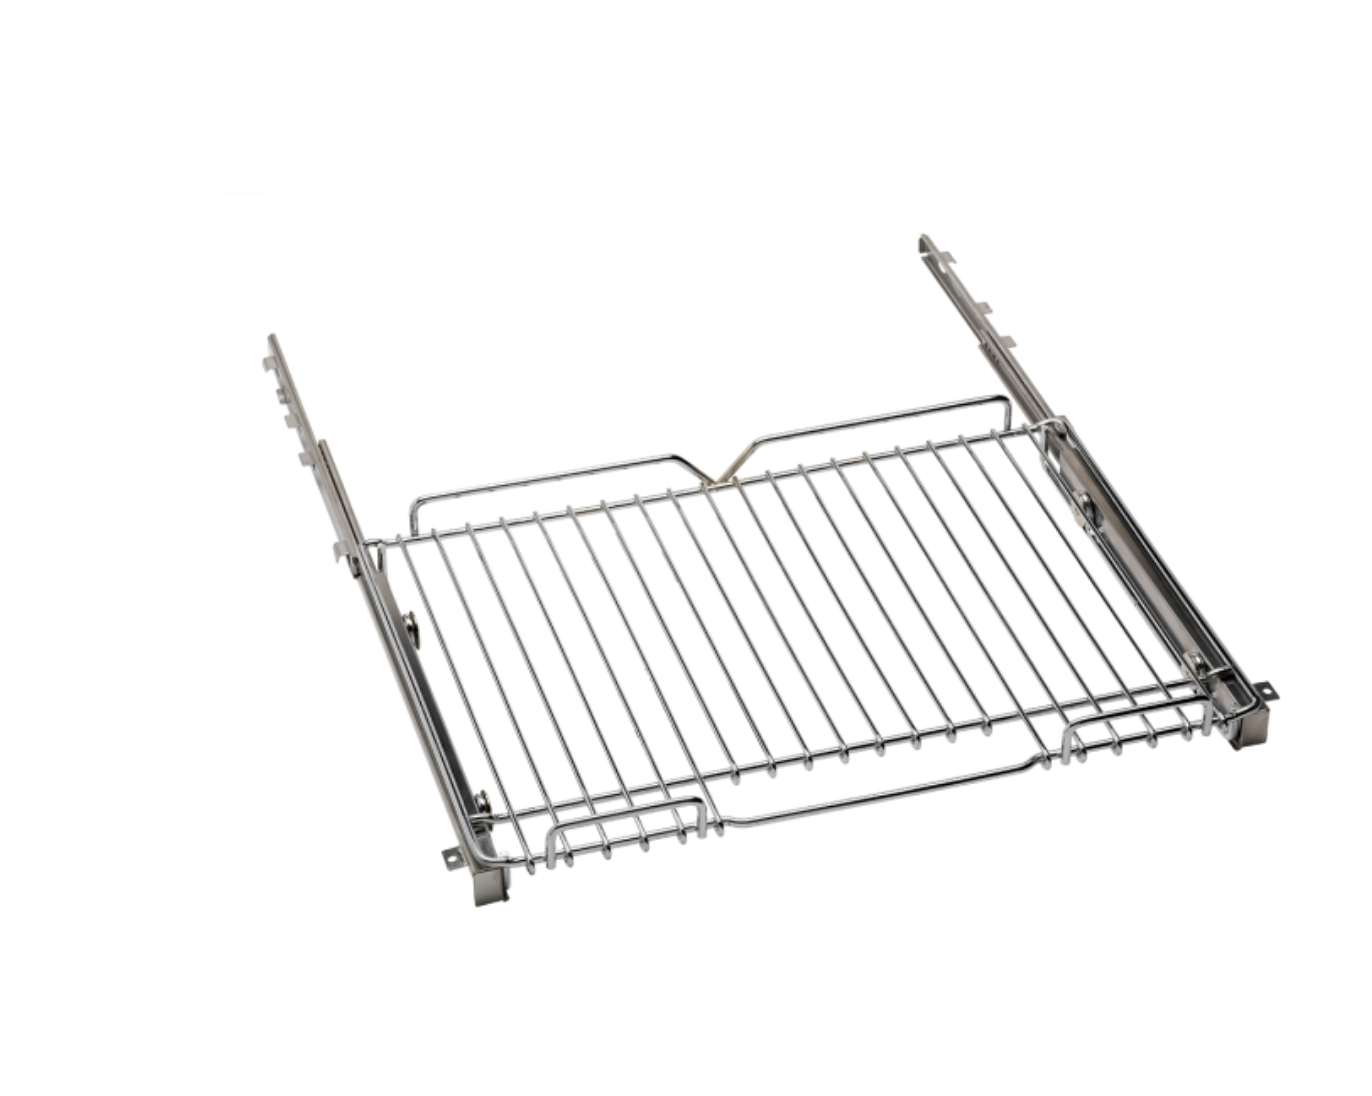 Two telescopic glide shelves - Telescoping oven rack fully extends for easy loading, unloading, basting, and turning. Telescopic rack won't tip, keeping even the heaviest dish secure. Ball bearing rack guides assure smooth performance High-quality stainless steel design make for easy cleaning.